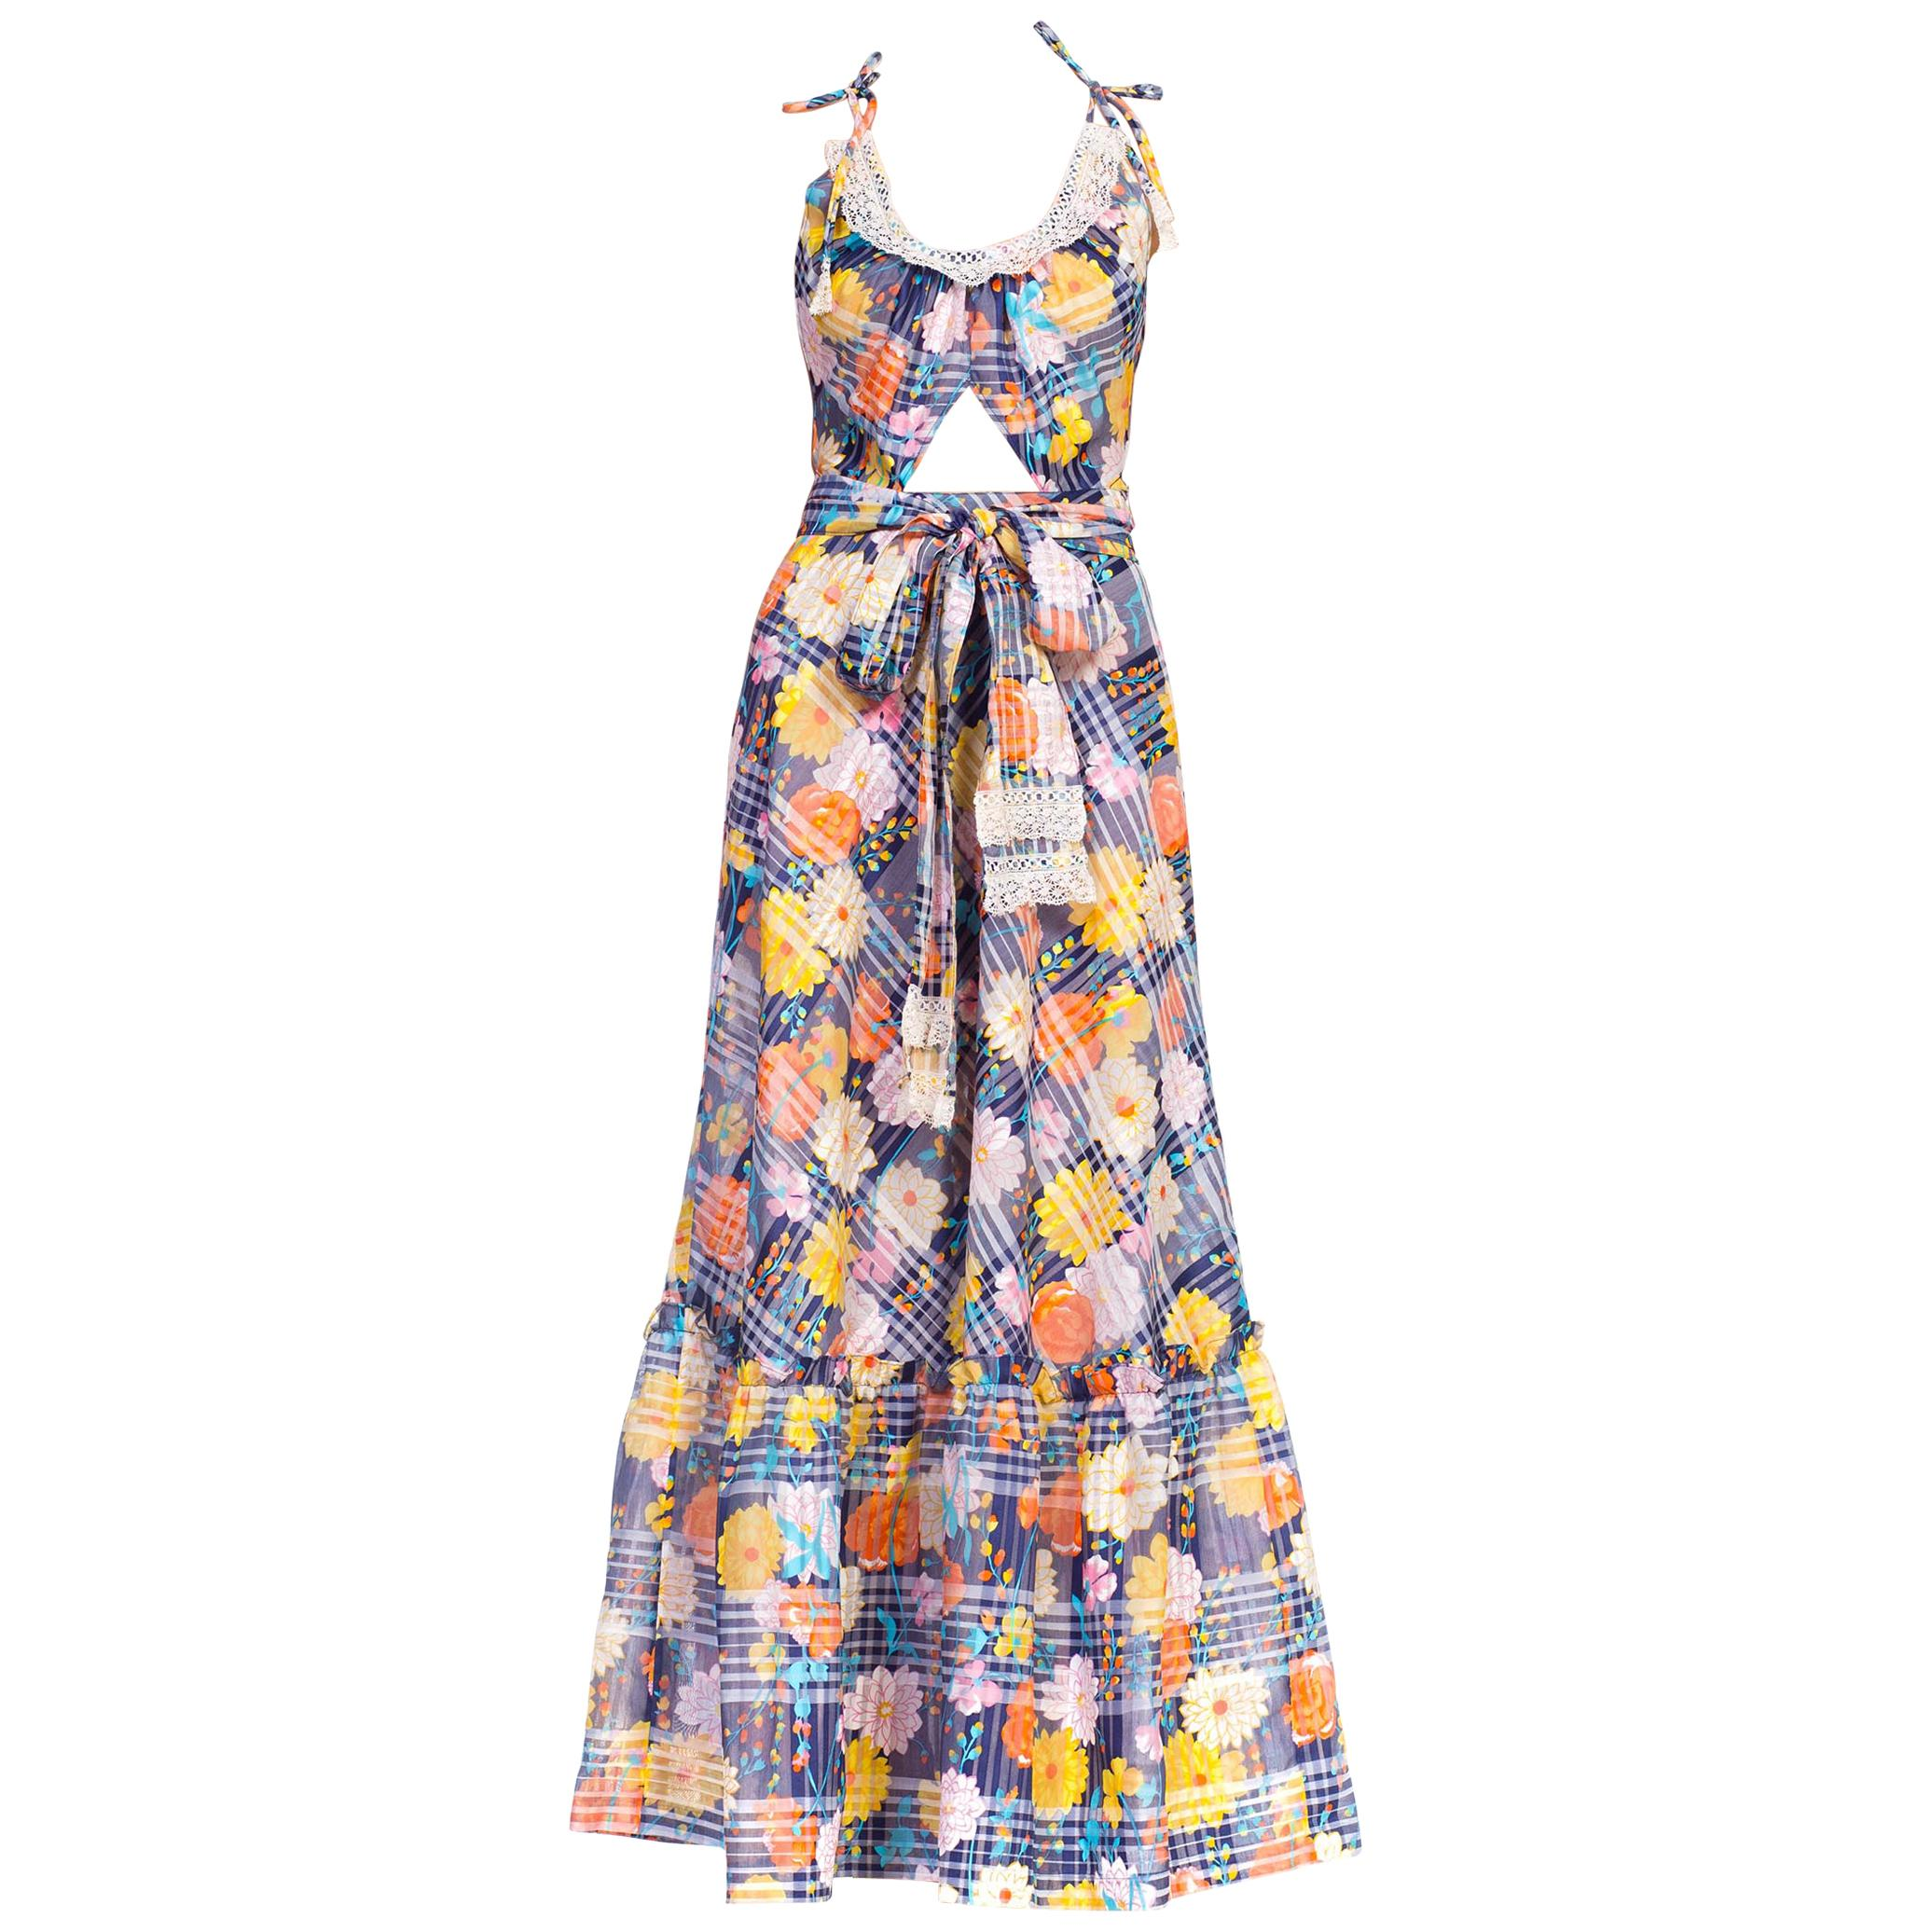 Morphew Collection Summer Maxi Dress Made From 1970S Floral Printed Lt Weight JM